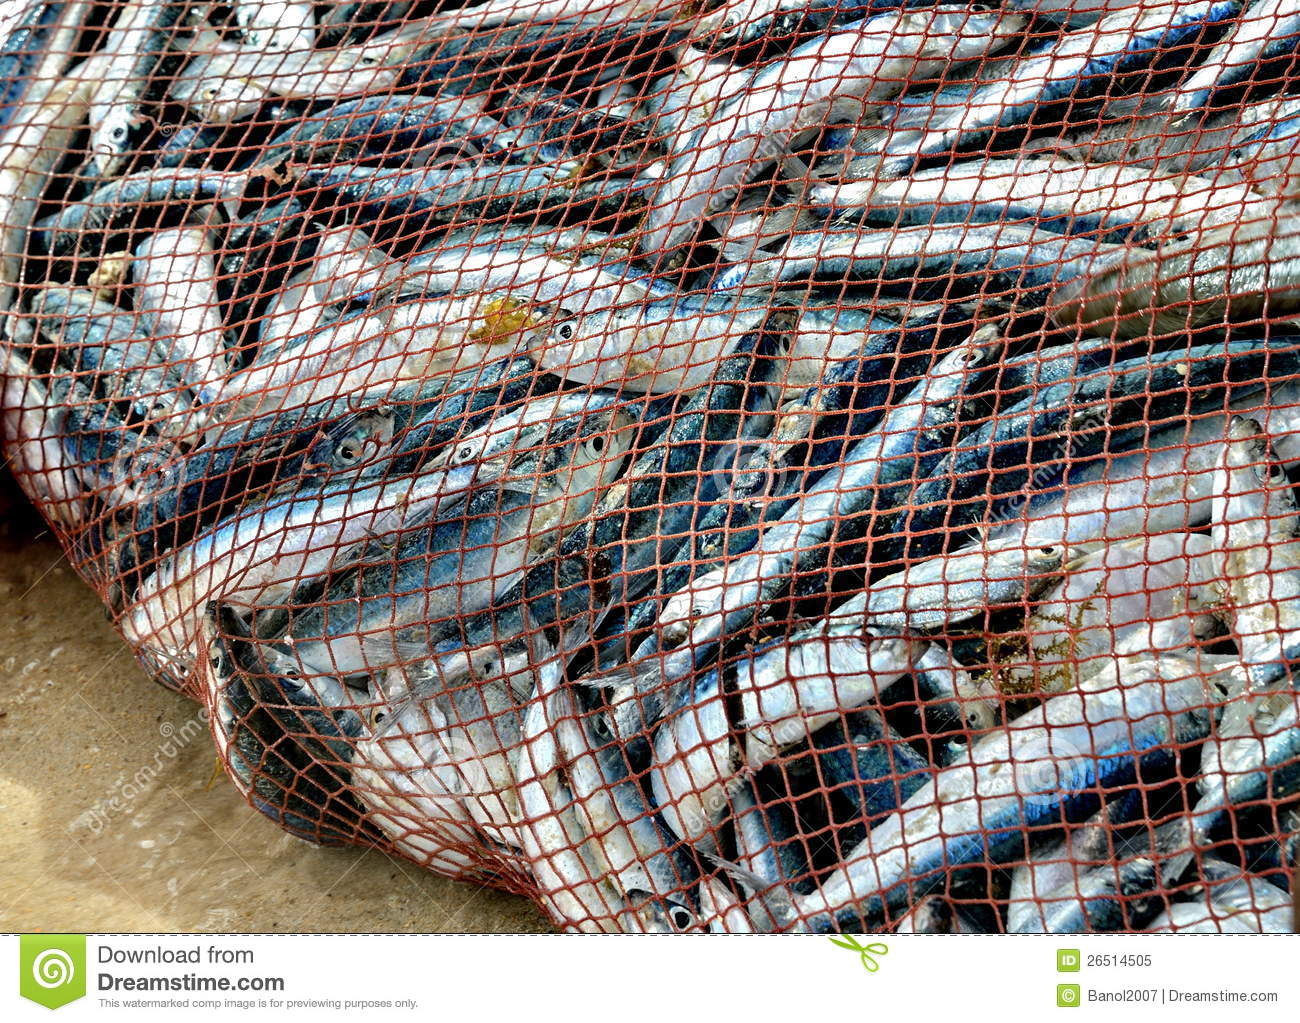 Catca thursday july 30 ready to receive the kingdom of for Sjfc fish r net